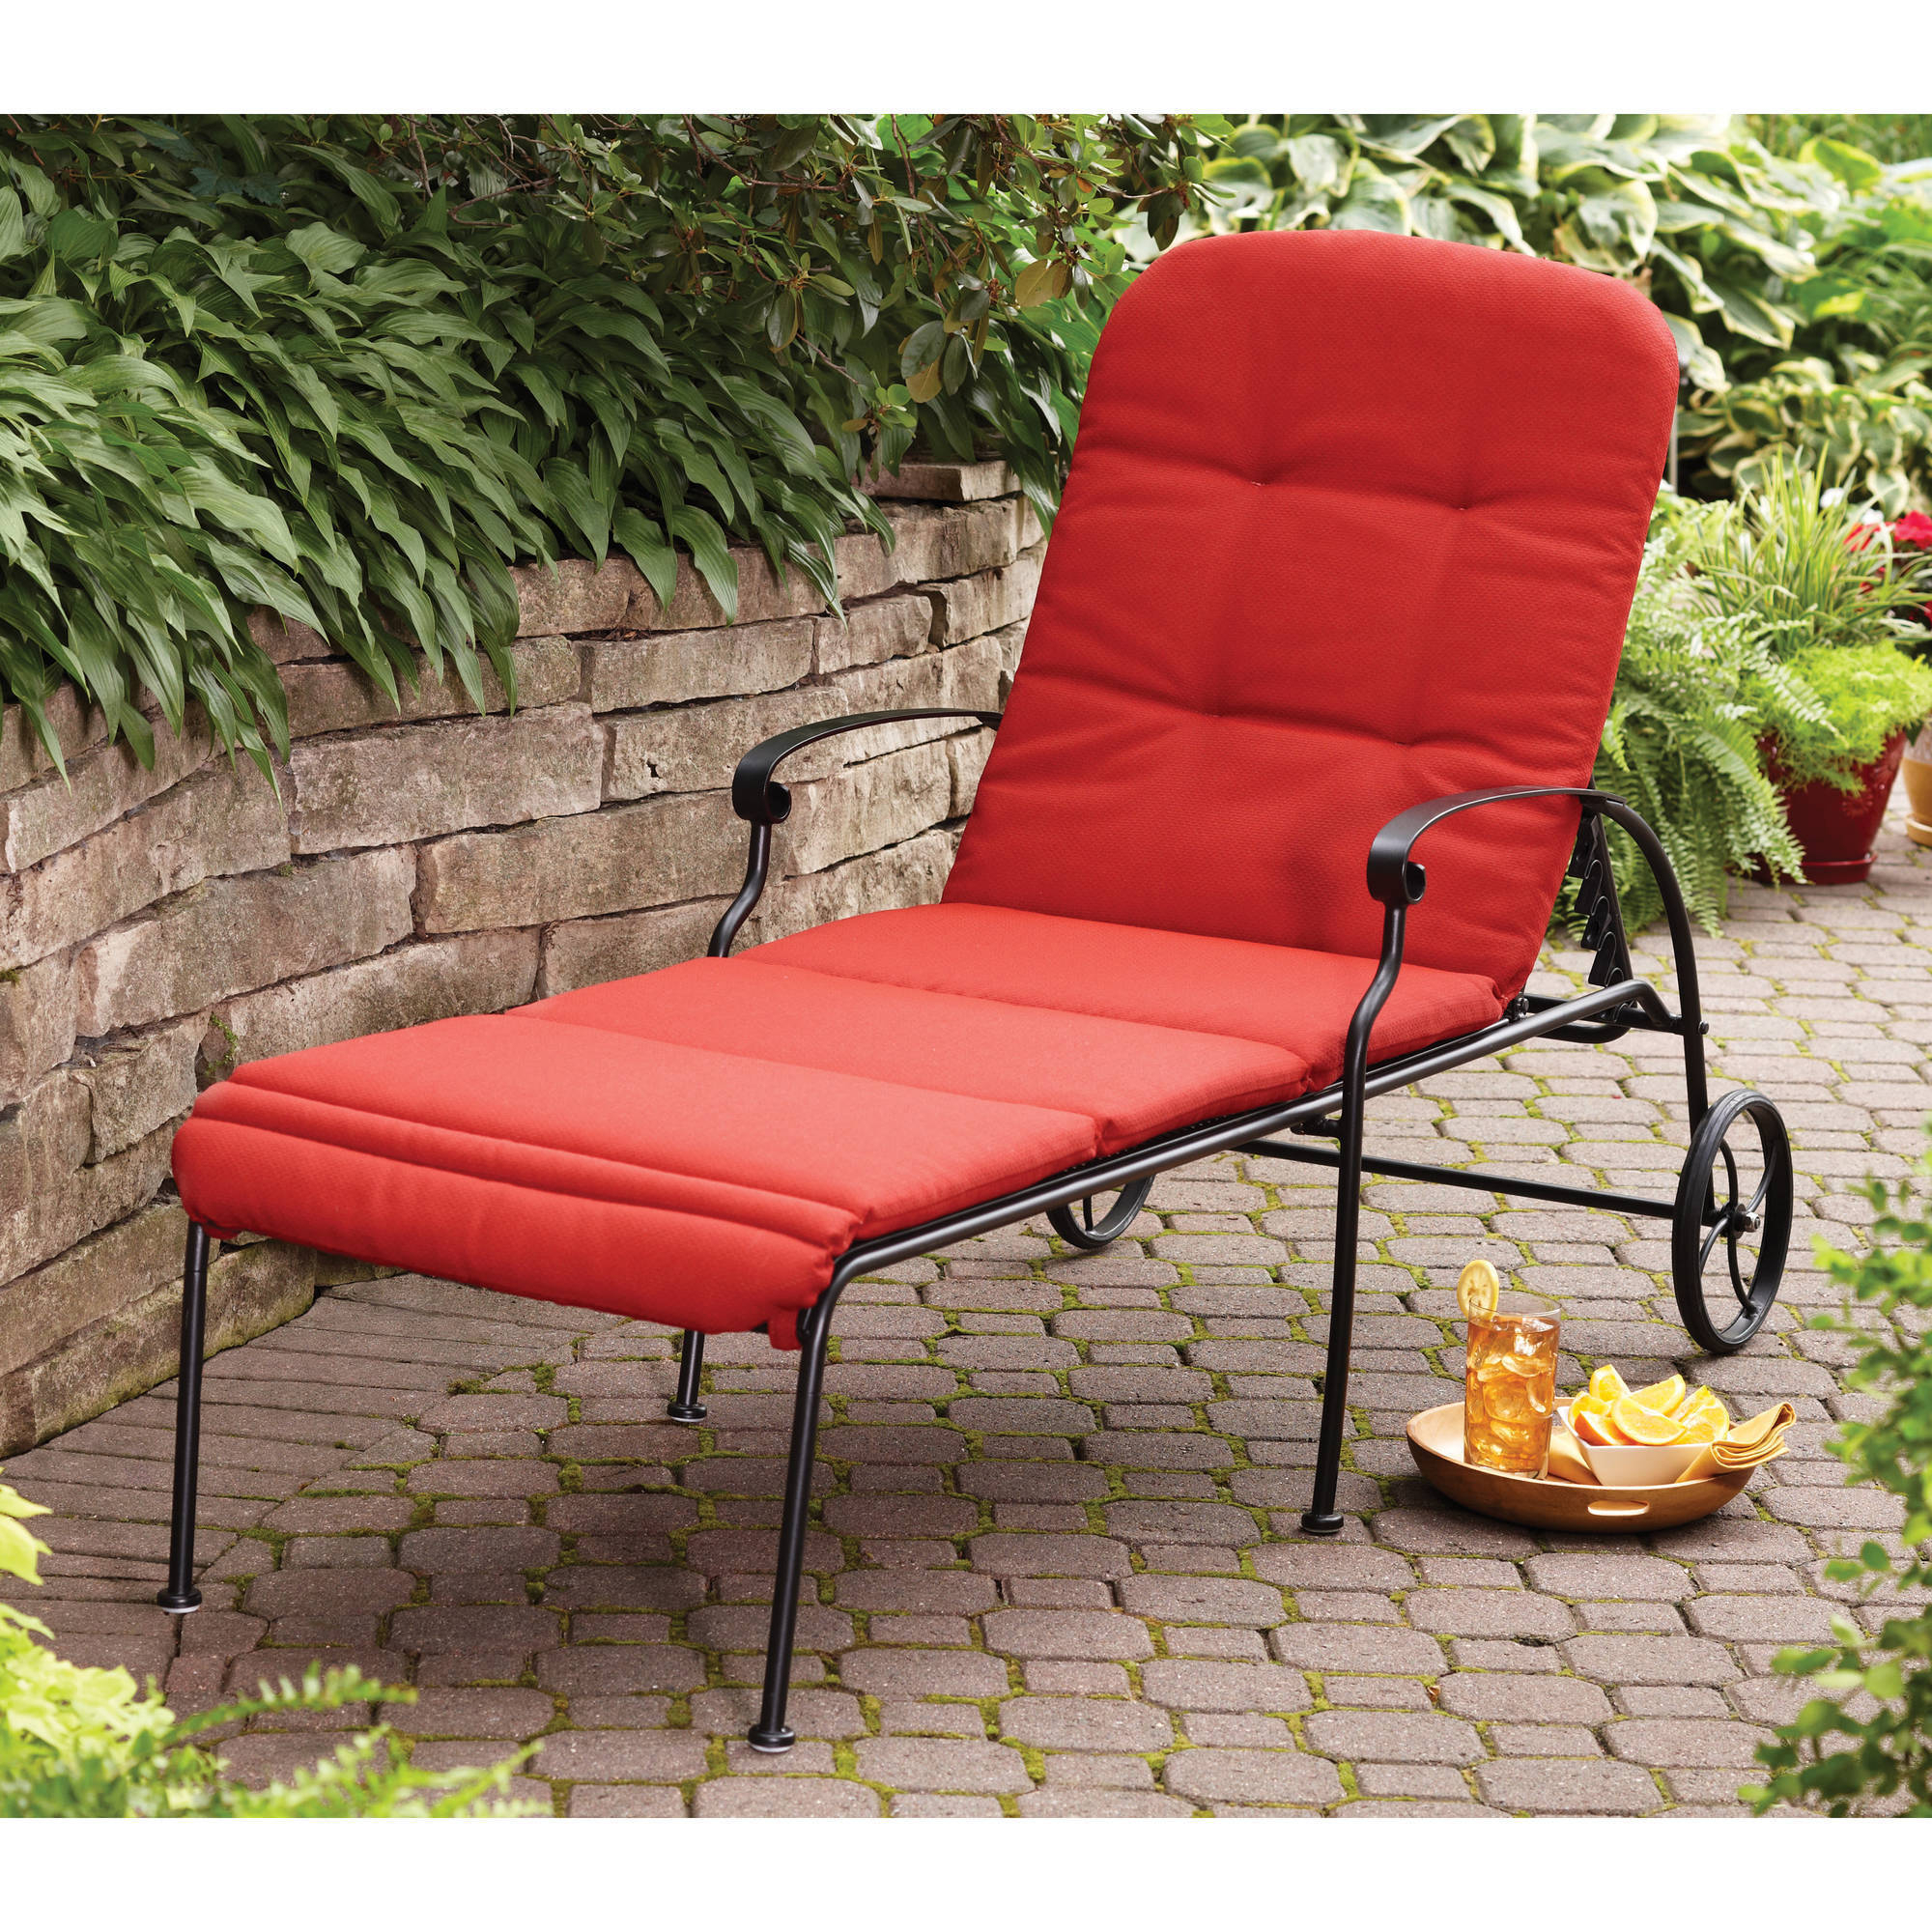 Better Homes & Gardens Clayton Court Chaise Lounge With Wheels, Red Inside Most Recent Outdoor Cart Wheel Adjustable Chaise Lounge Chairs (View 23 of 25)